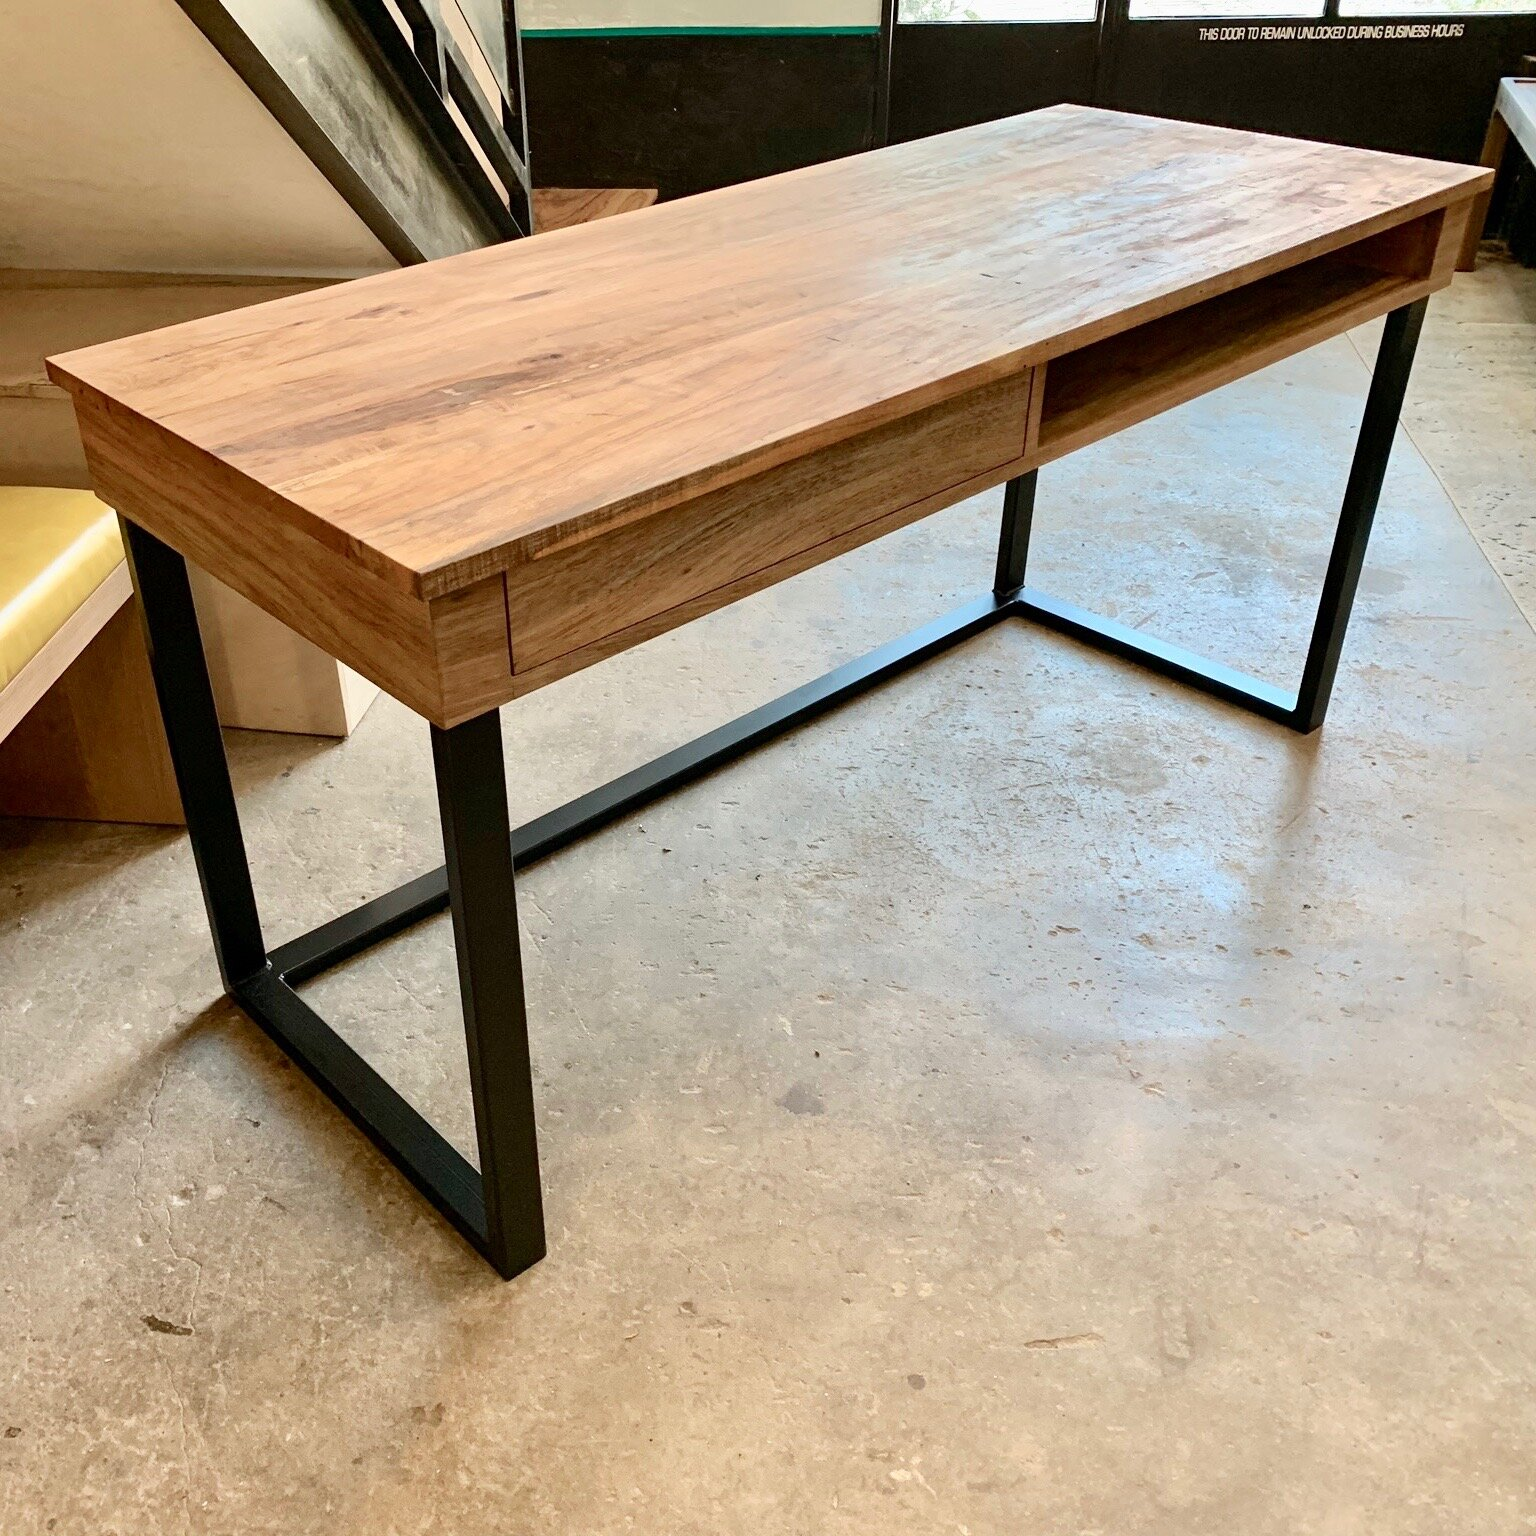 Pecan Desk with drawer/cubby